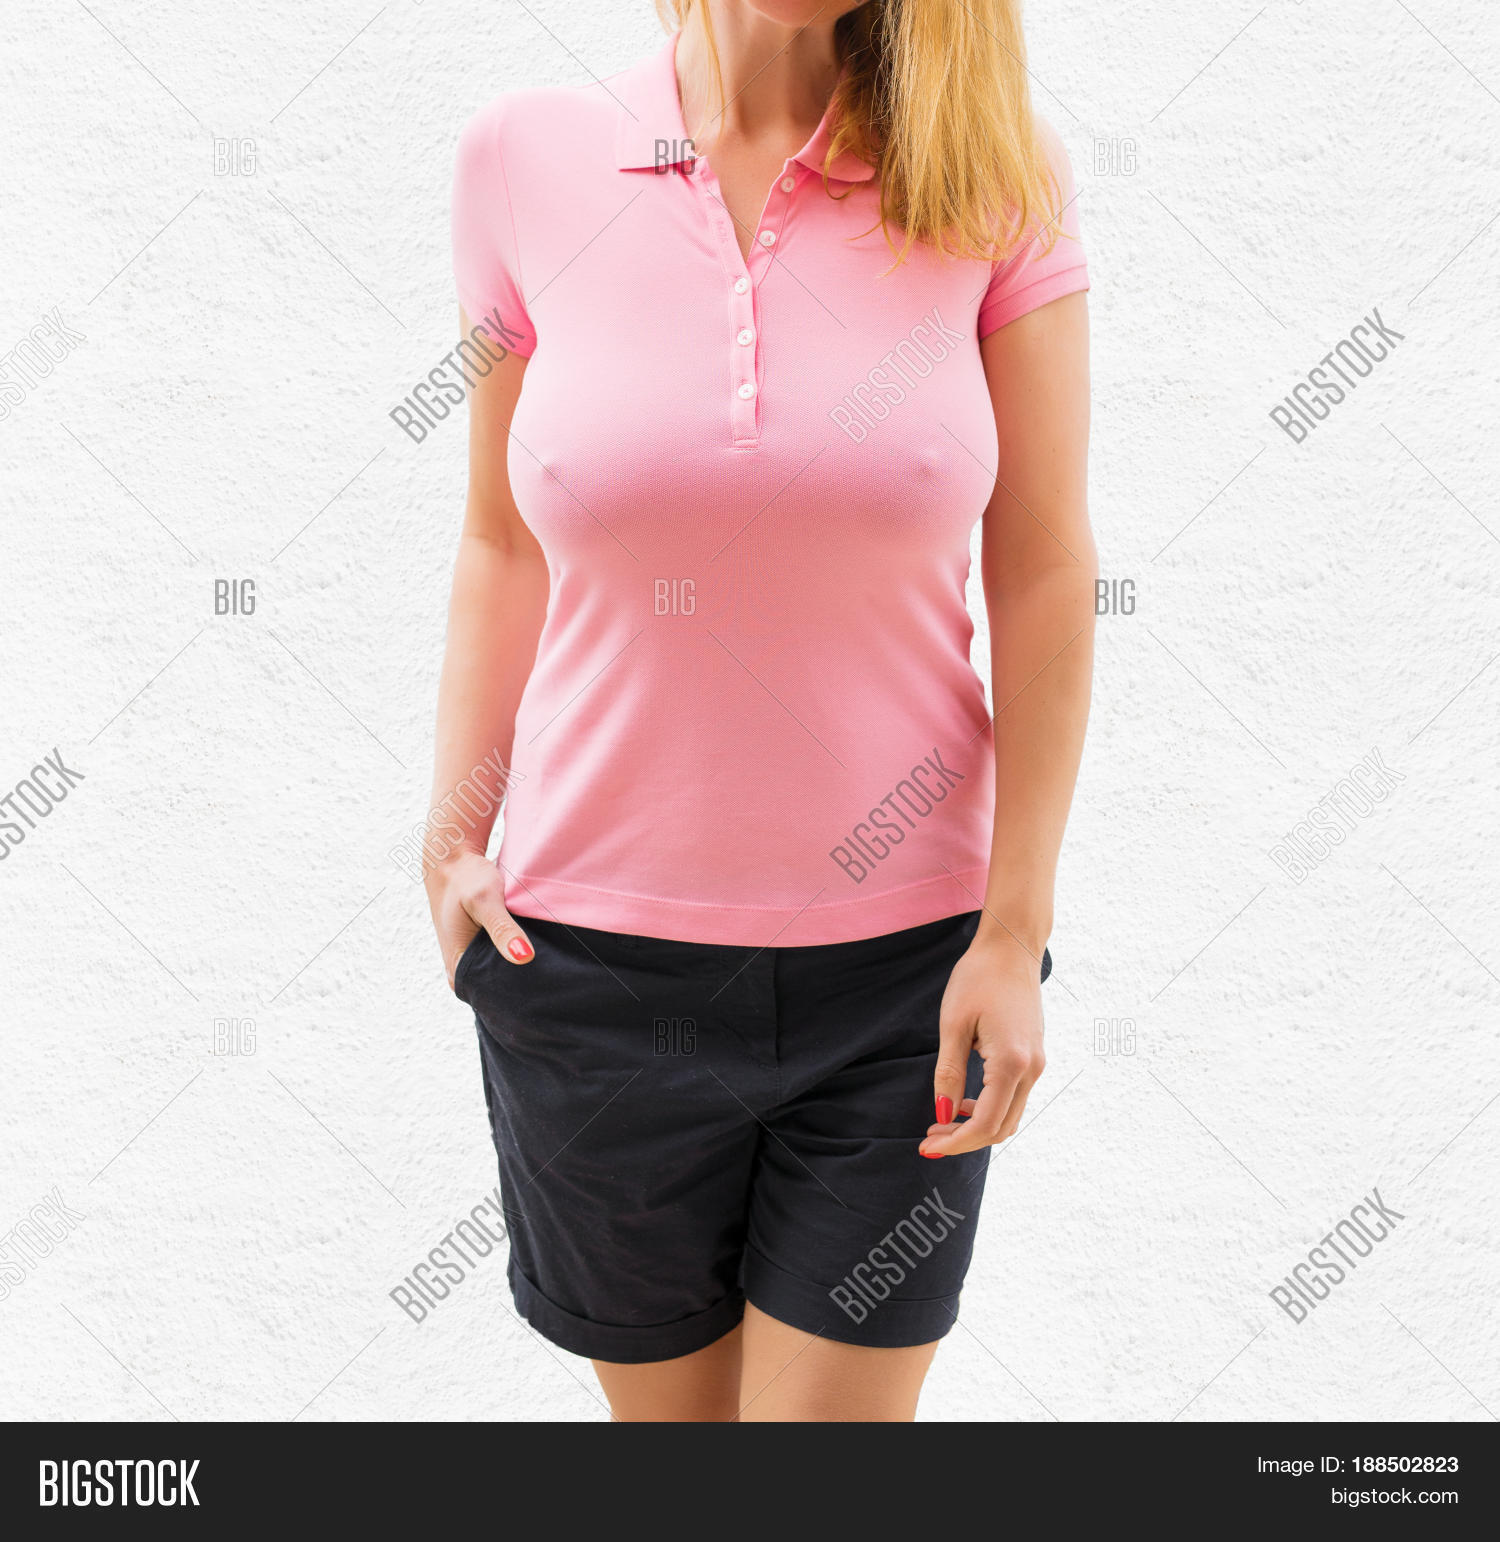 Girls with big tits in polos